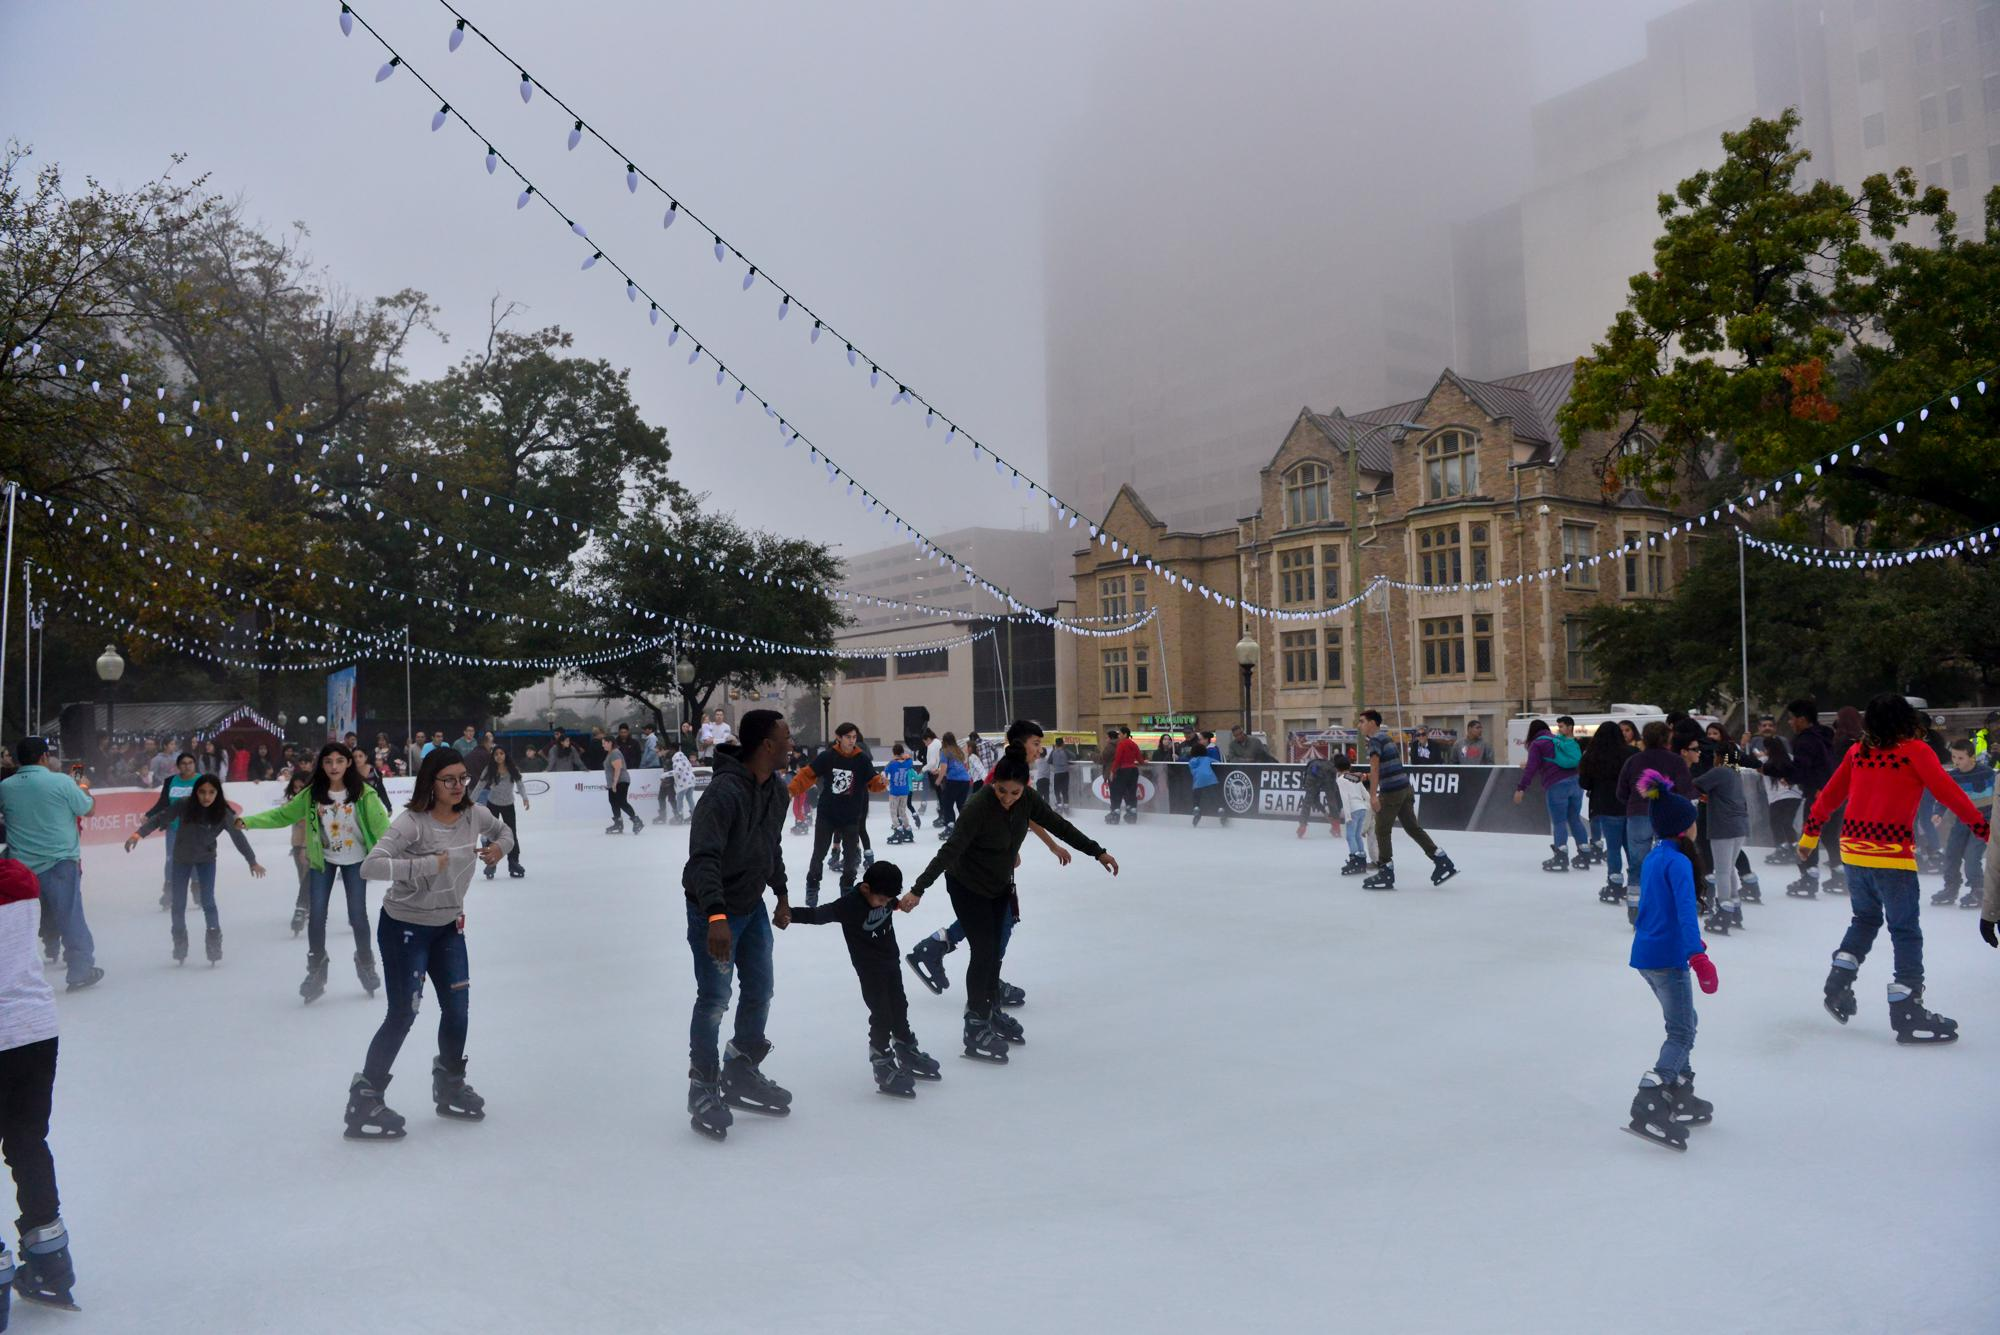 More than 10k have skated on the Travis Park ice rink so far. Will it return next year?